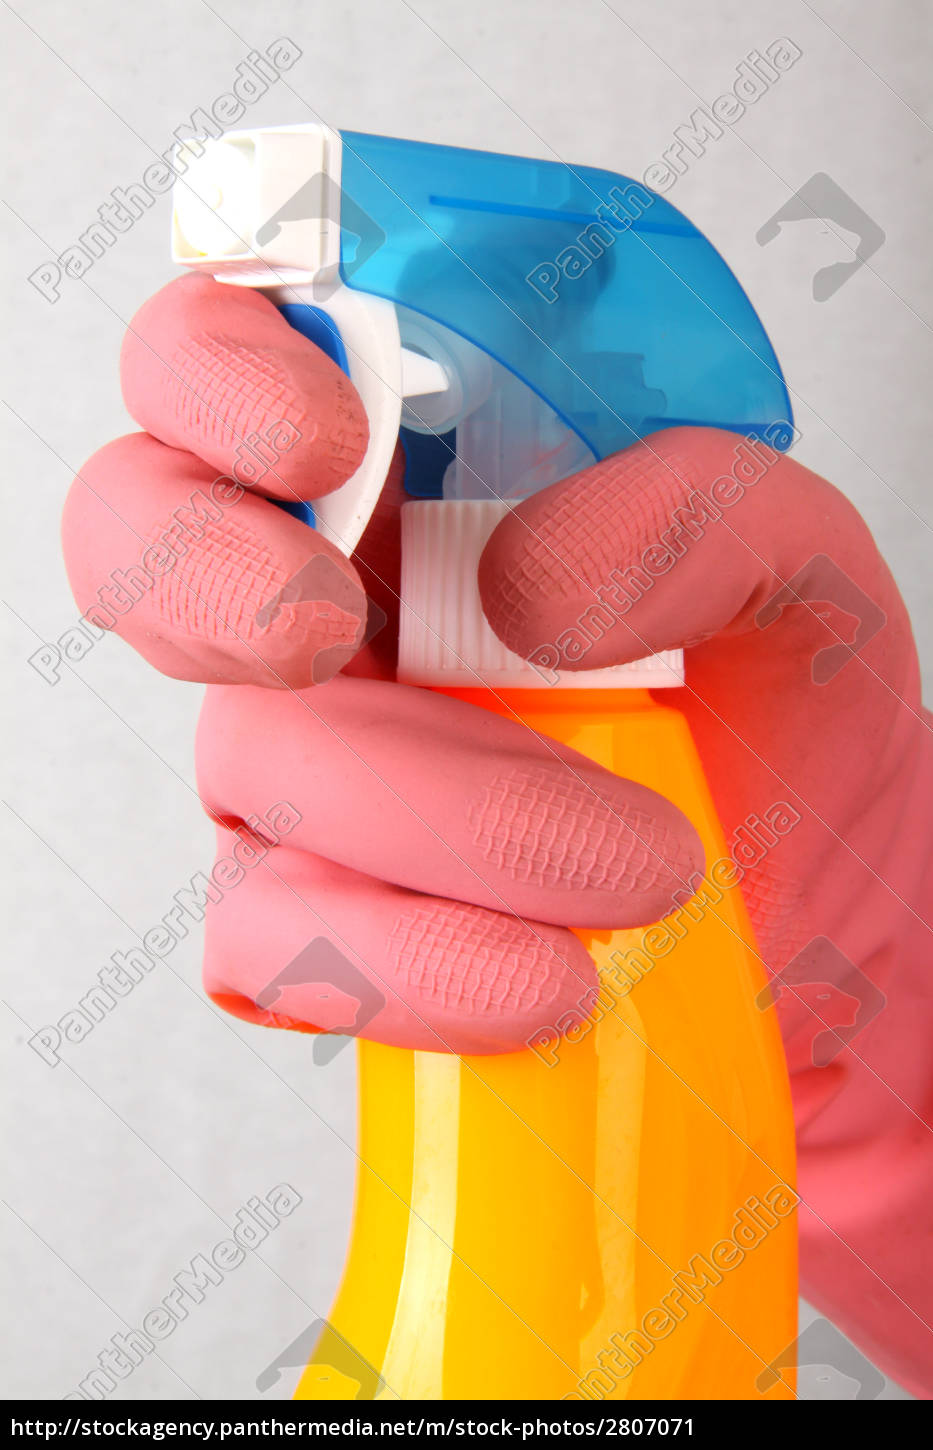 cleaning, supplies - 2807071